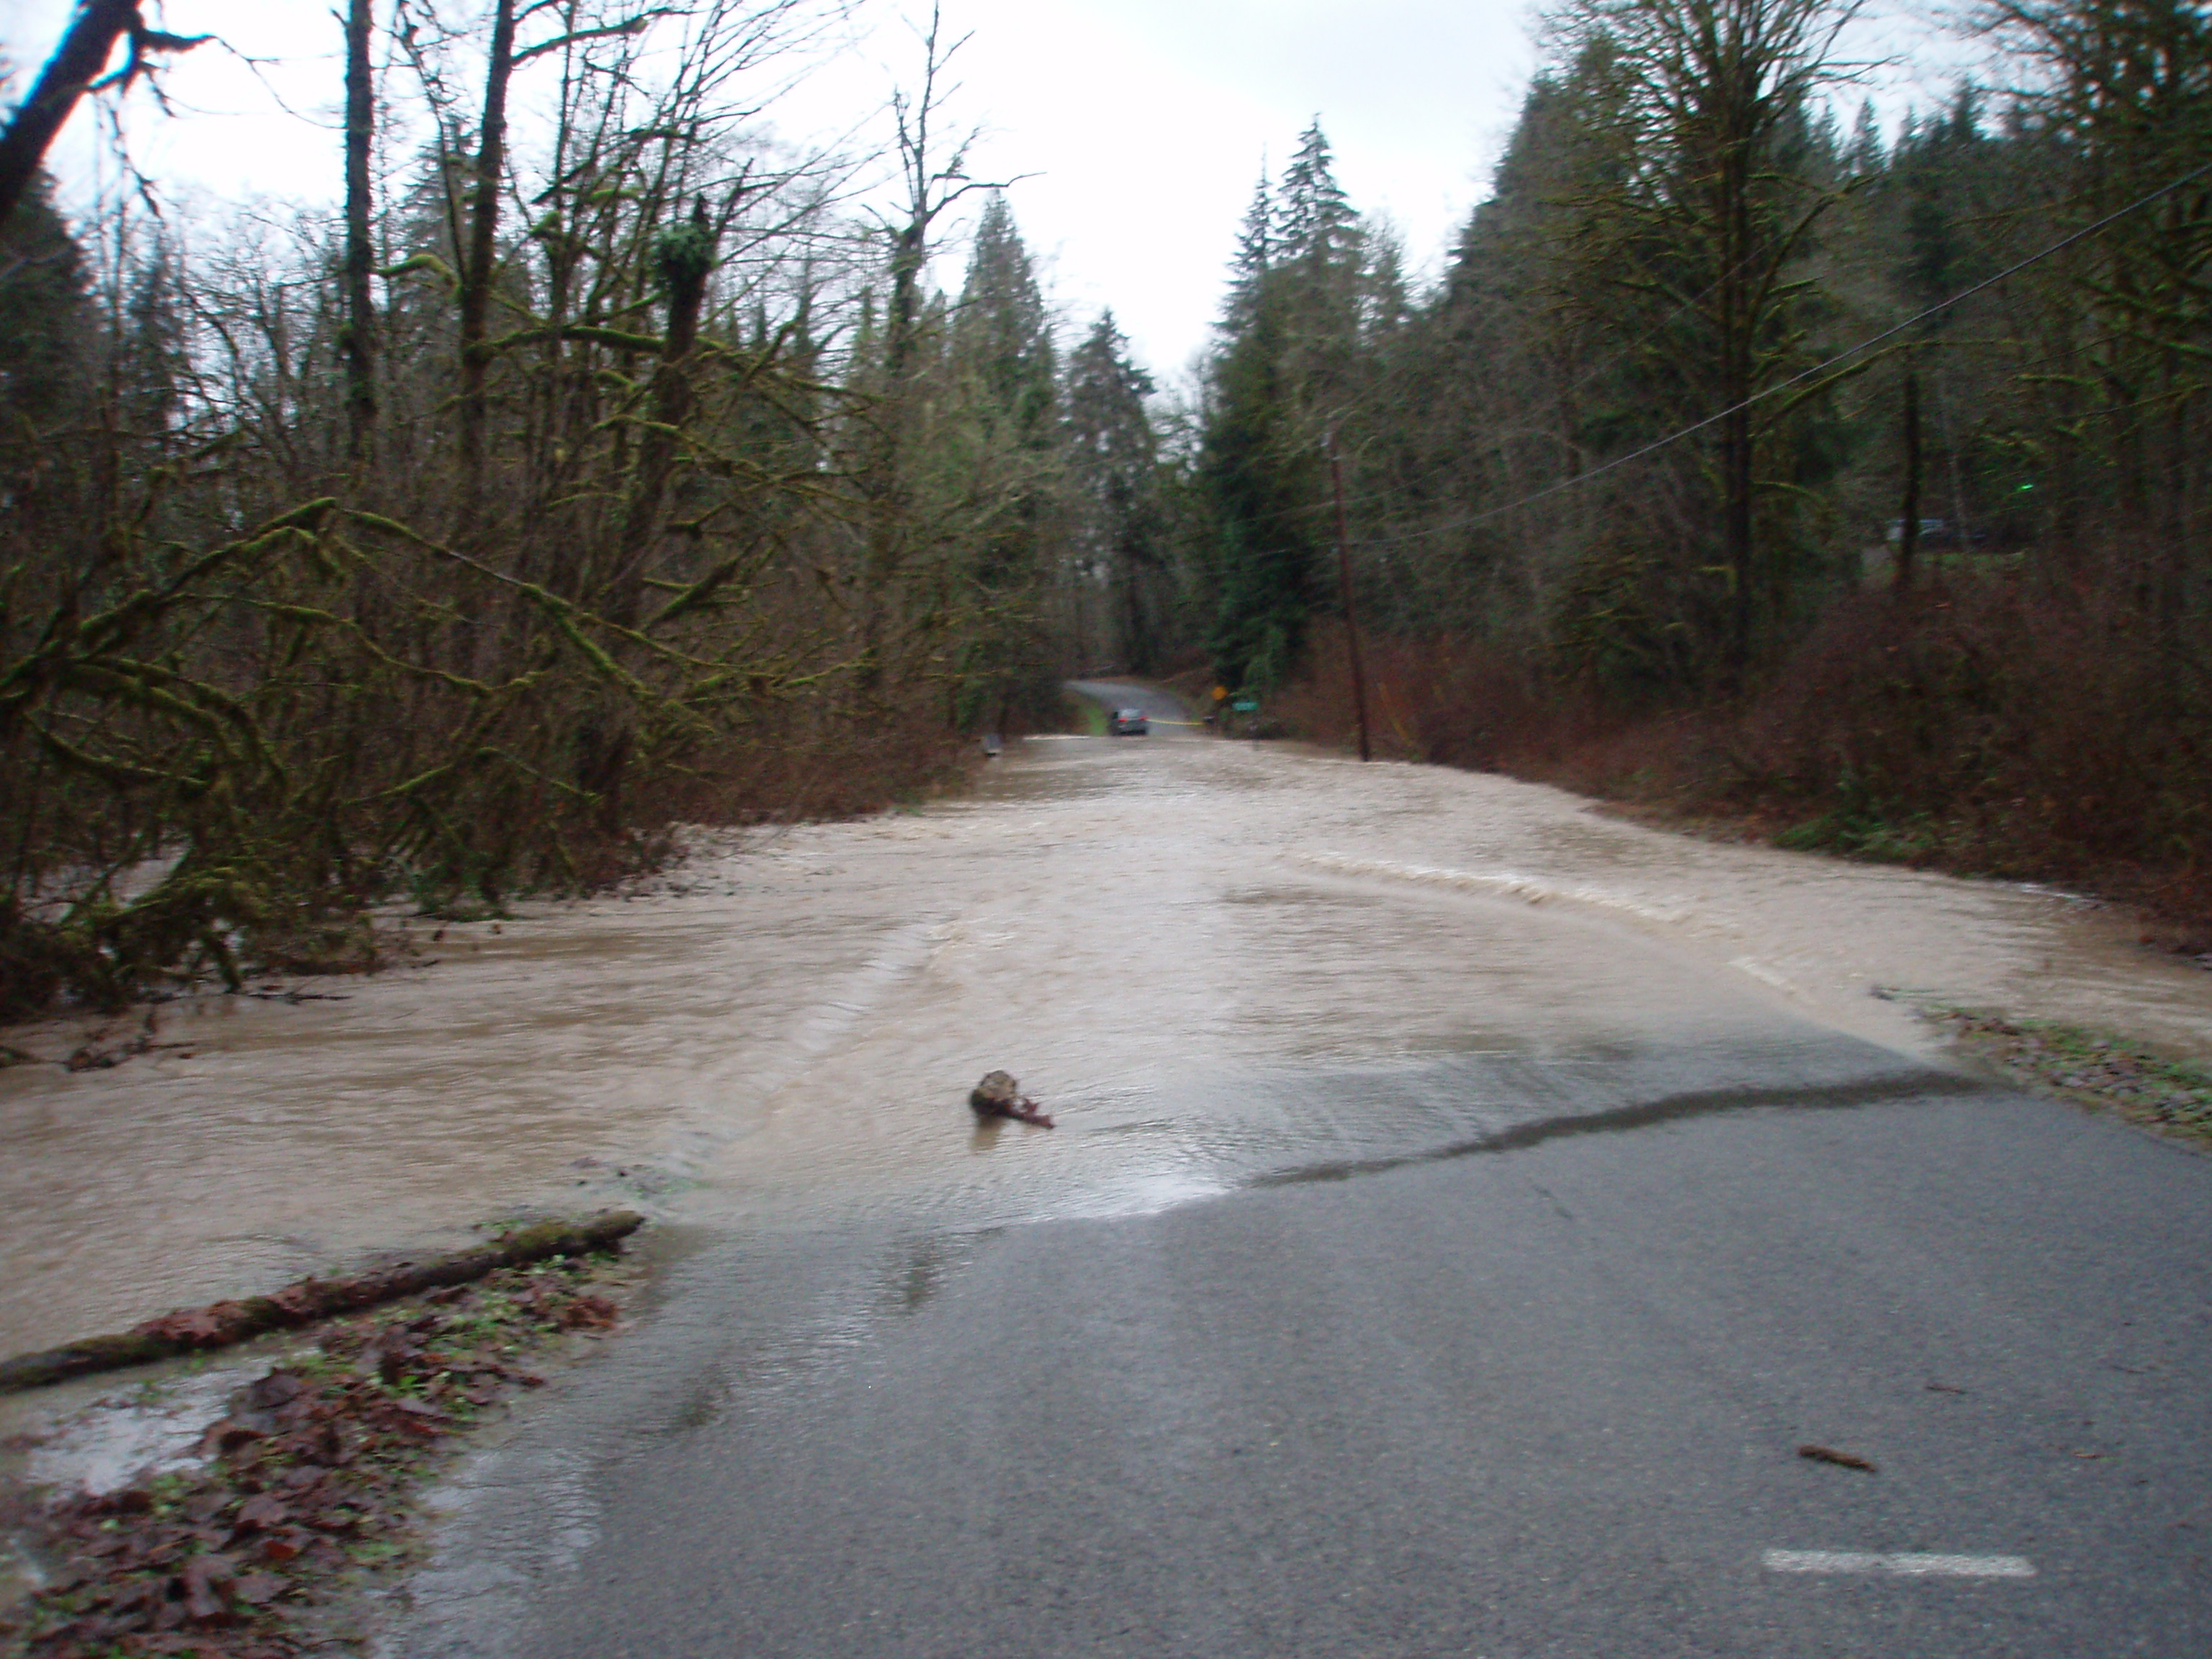 The road ahead is flooded.